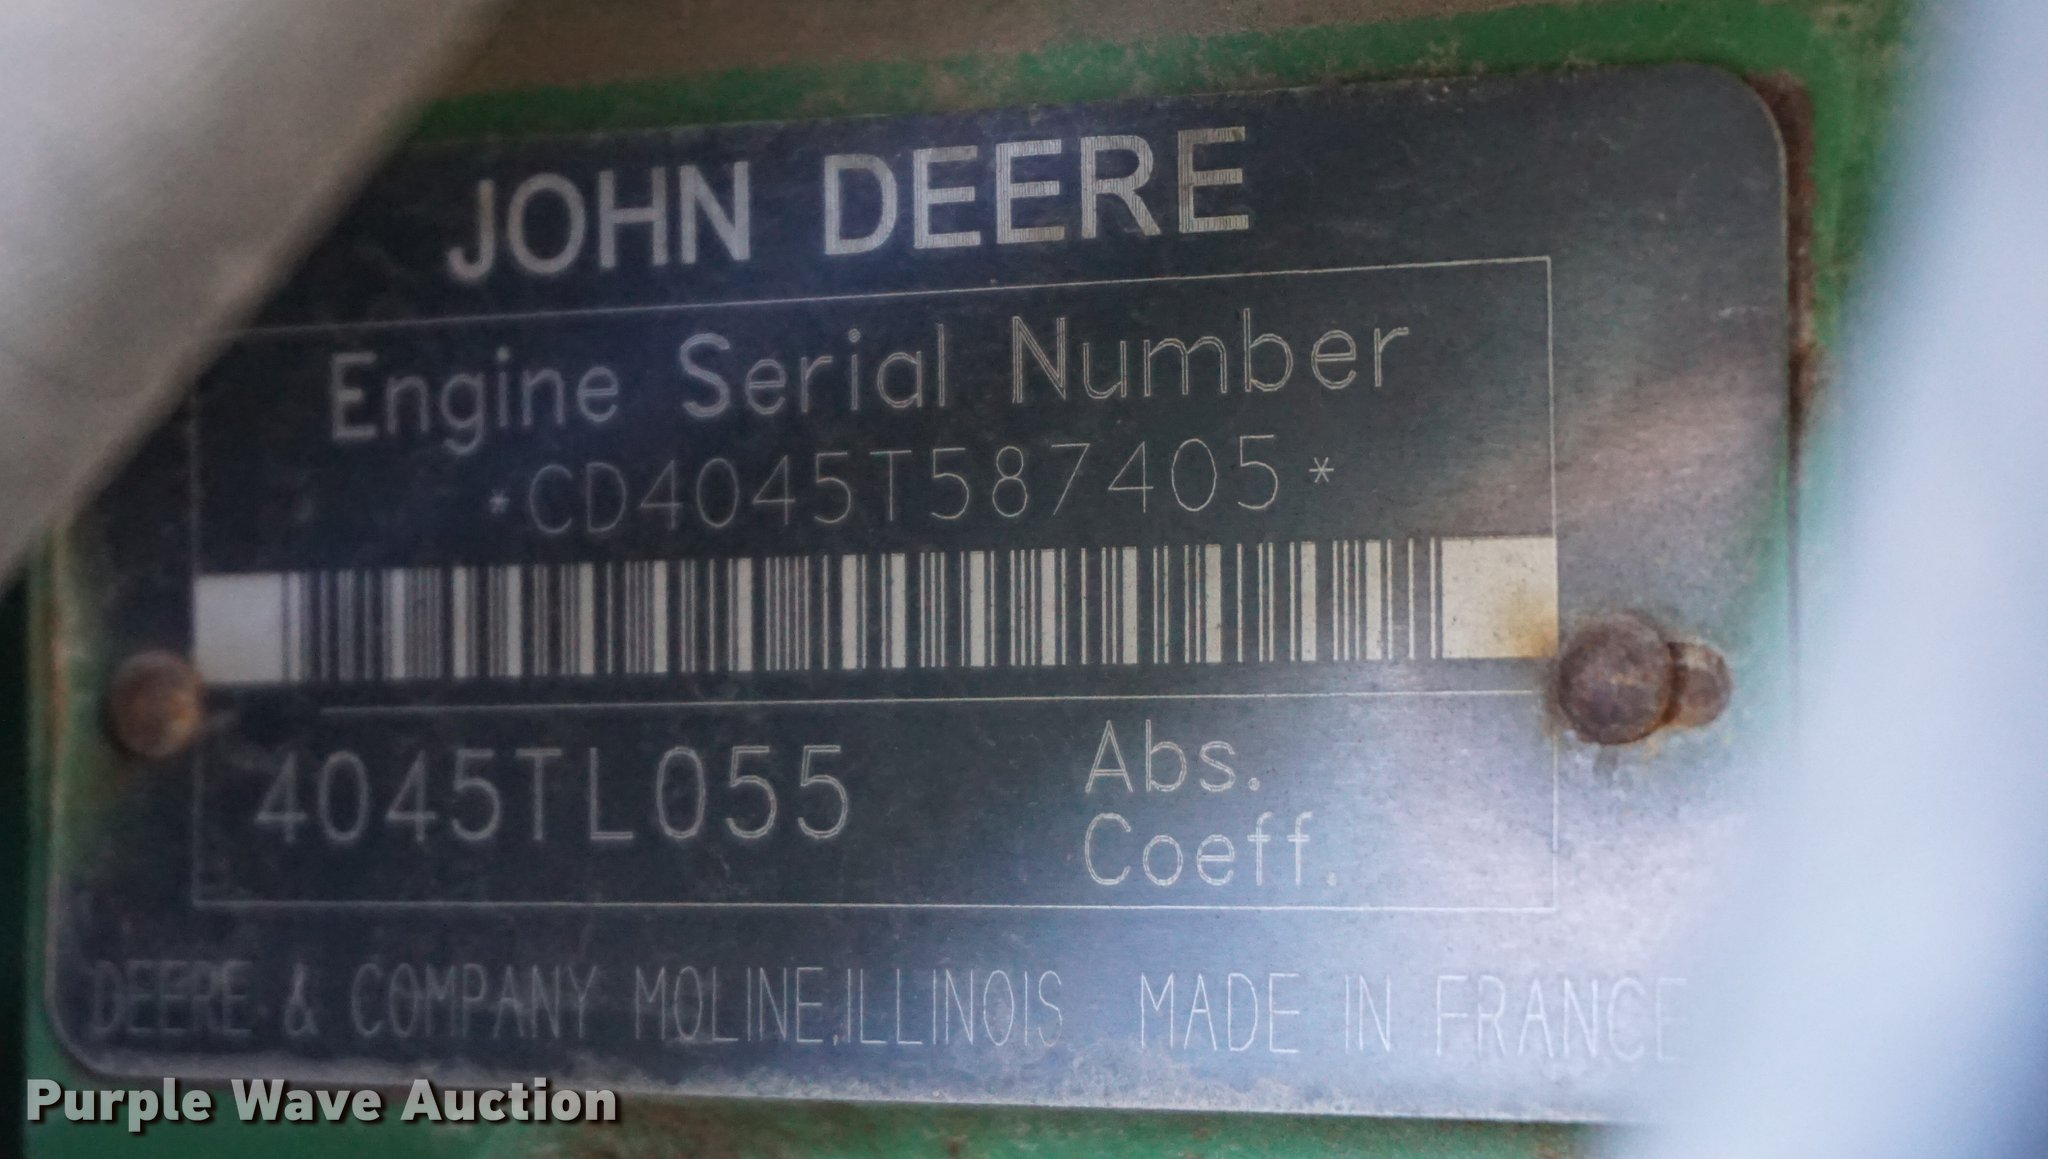 "2000 John Deere 6310 MFWD tractor | Item DA1325 | 12-5-2017 John Deere Wiring Diagram on john deere 345 diagram, john deere repair diagrams, john deere rear end diagrams, john deere electrical diagrams, john deere fuse box diagram, john deere fuel gauge wiring, john deere 3020 diagram, john deere voltage regulator wiring, john deere 42"" deck diagrams, john deere starters diagrams, john deere 310e backhoe problems, john deere power beyond diagram, john deere gt235 diagram, john deere tractor wiring, john deere riding mower diagram, john deere chassis, john deere cylinder head, john deere sabre mower belt diagram, john deere 212 diagram, john deere fuel system diagram,"